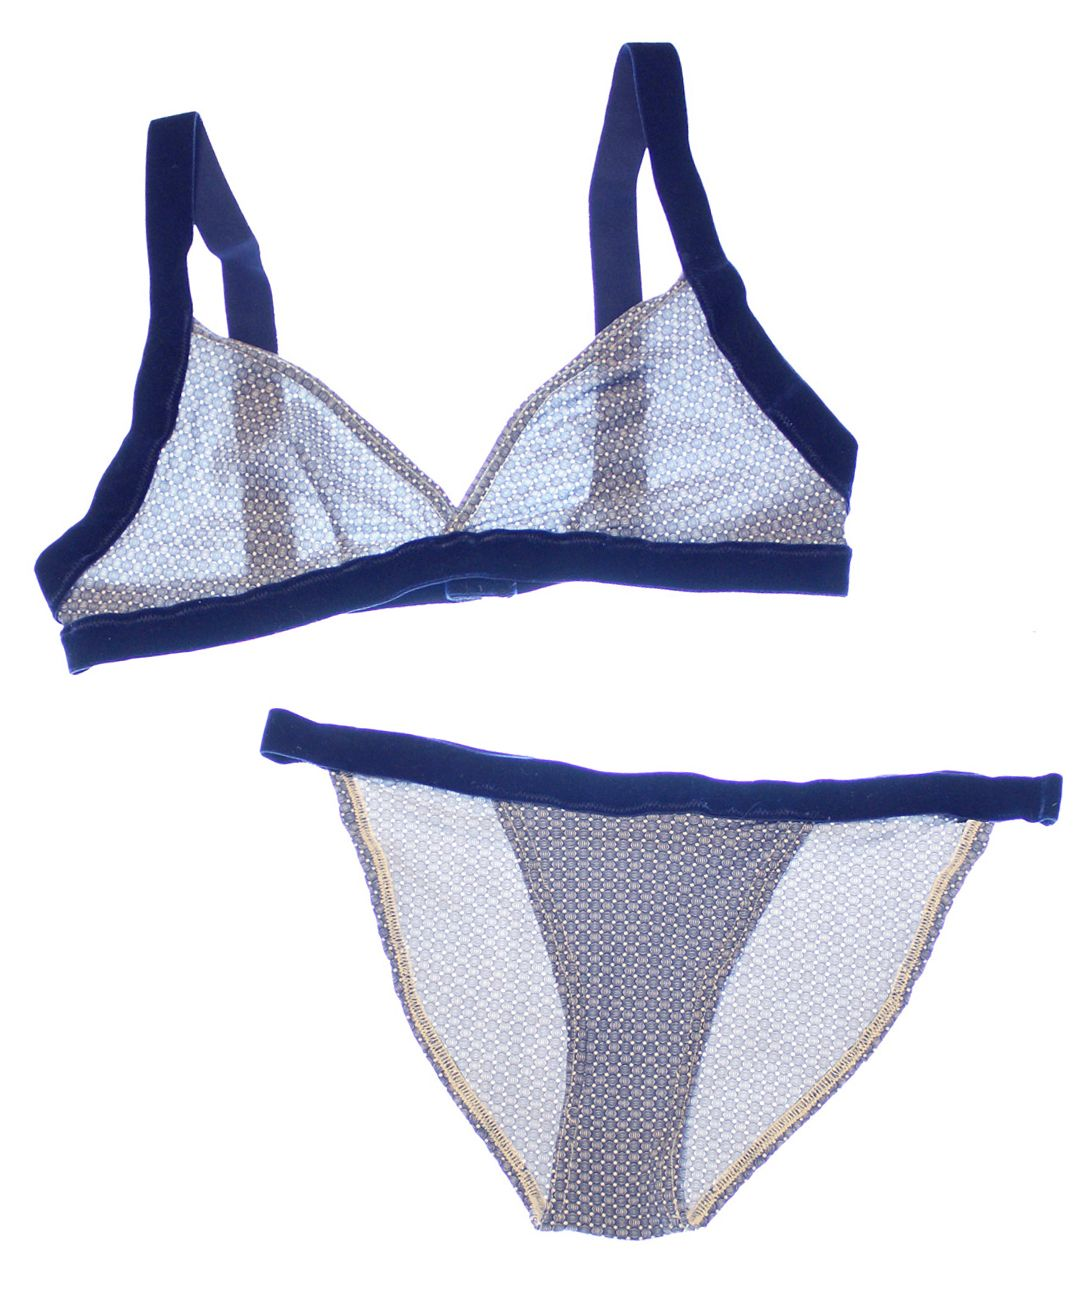 PRETTY LITTLE UNDERTHINGS: What's Ivory and Navy and Lacy All Over?